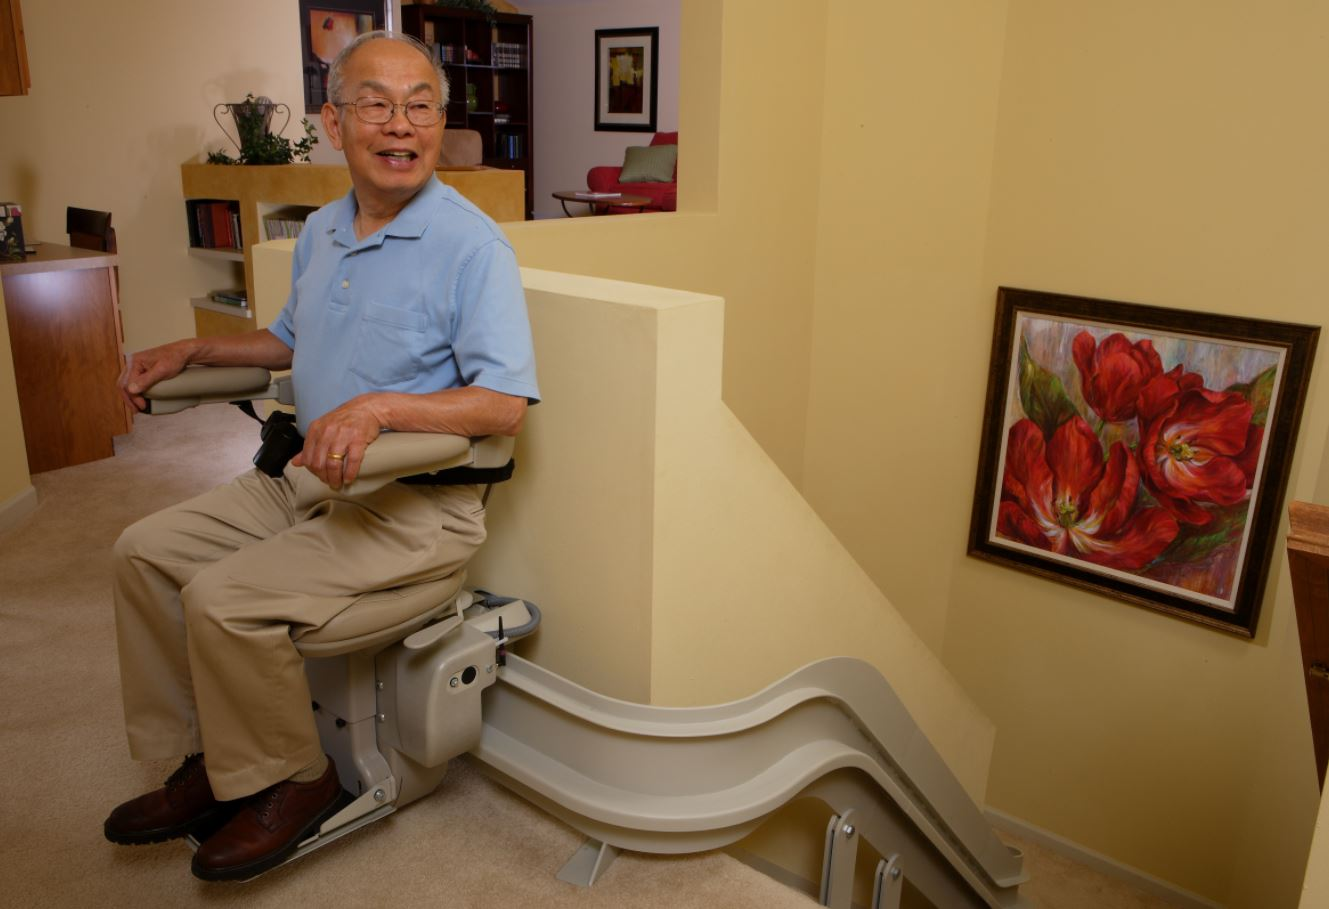 Stair Lifts: A Solution for Seniors that Want to Age at Home